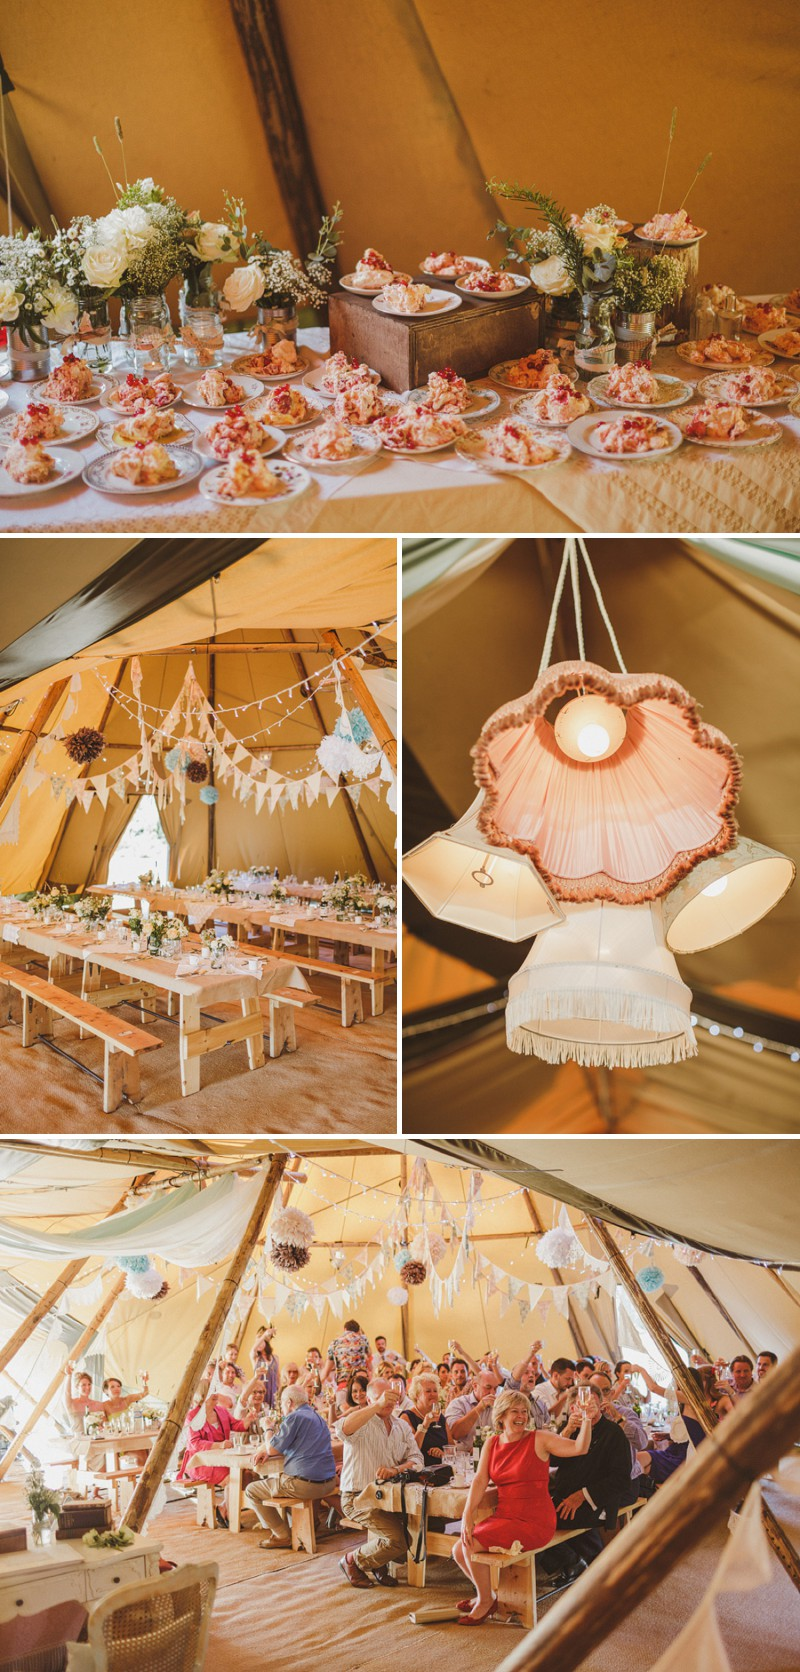 An Epic DIY Bohemian Wedding At Ratfyn Farm With A Jenny Packham Dress And A Humanist Ceremony And A Peach Colour Scheme Photographed By Ed Peers._0009